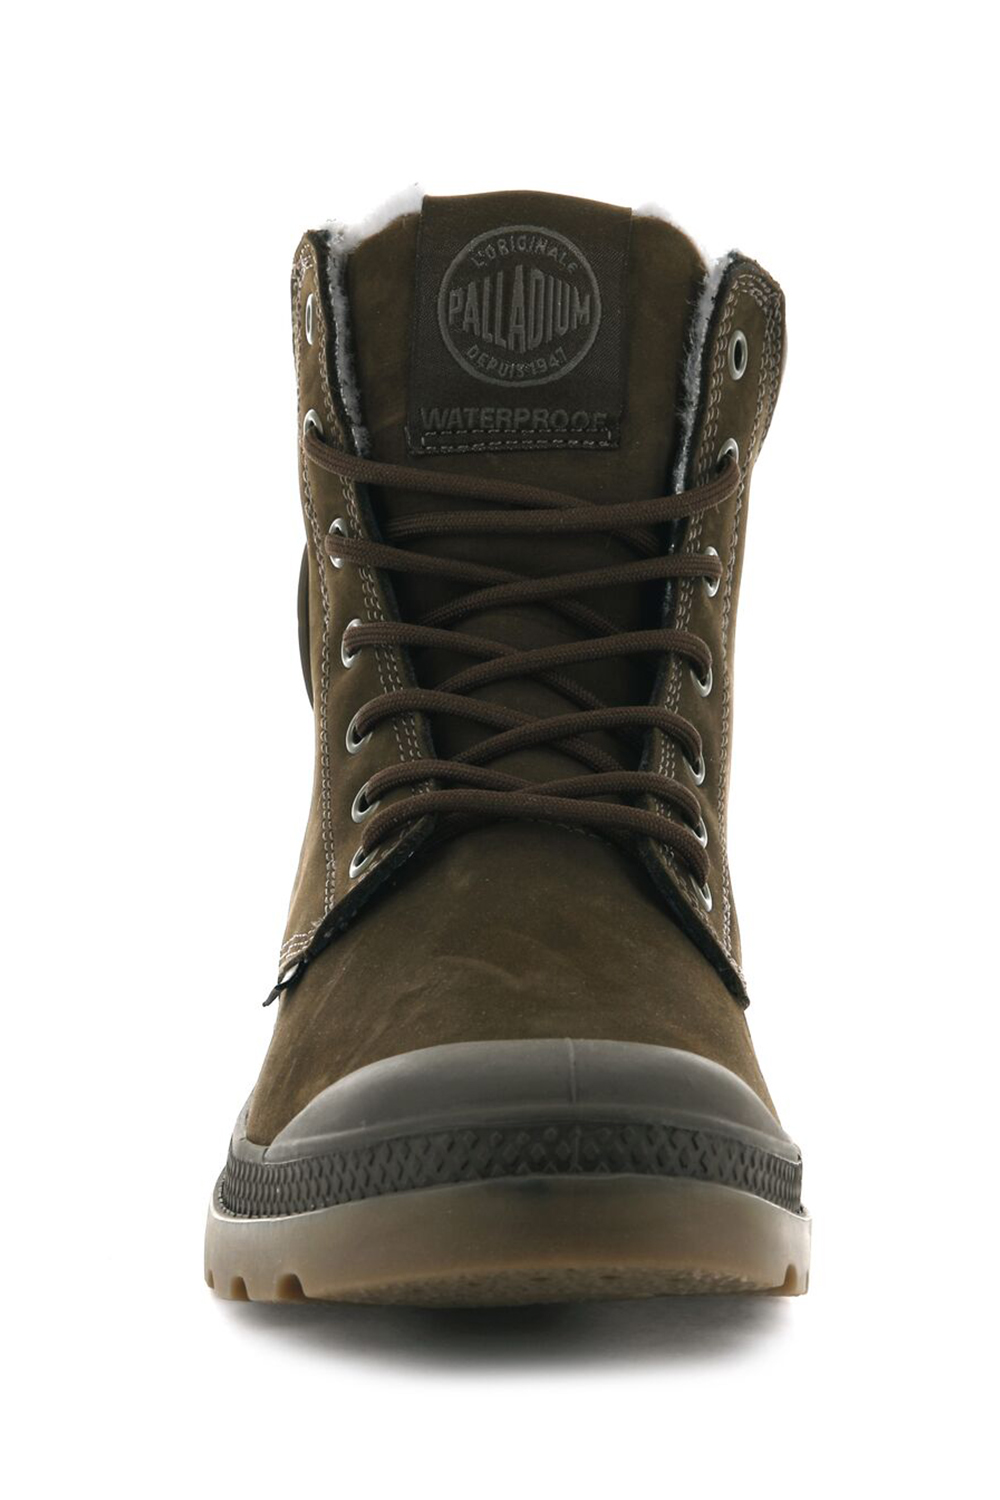 thumbnail 35 - Palladium Mens Pampa Sport Cuff Waterproof Suede Leather Shoe Wool Lined Boots